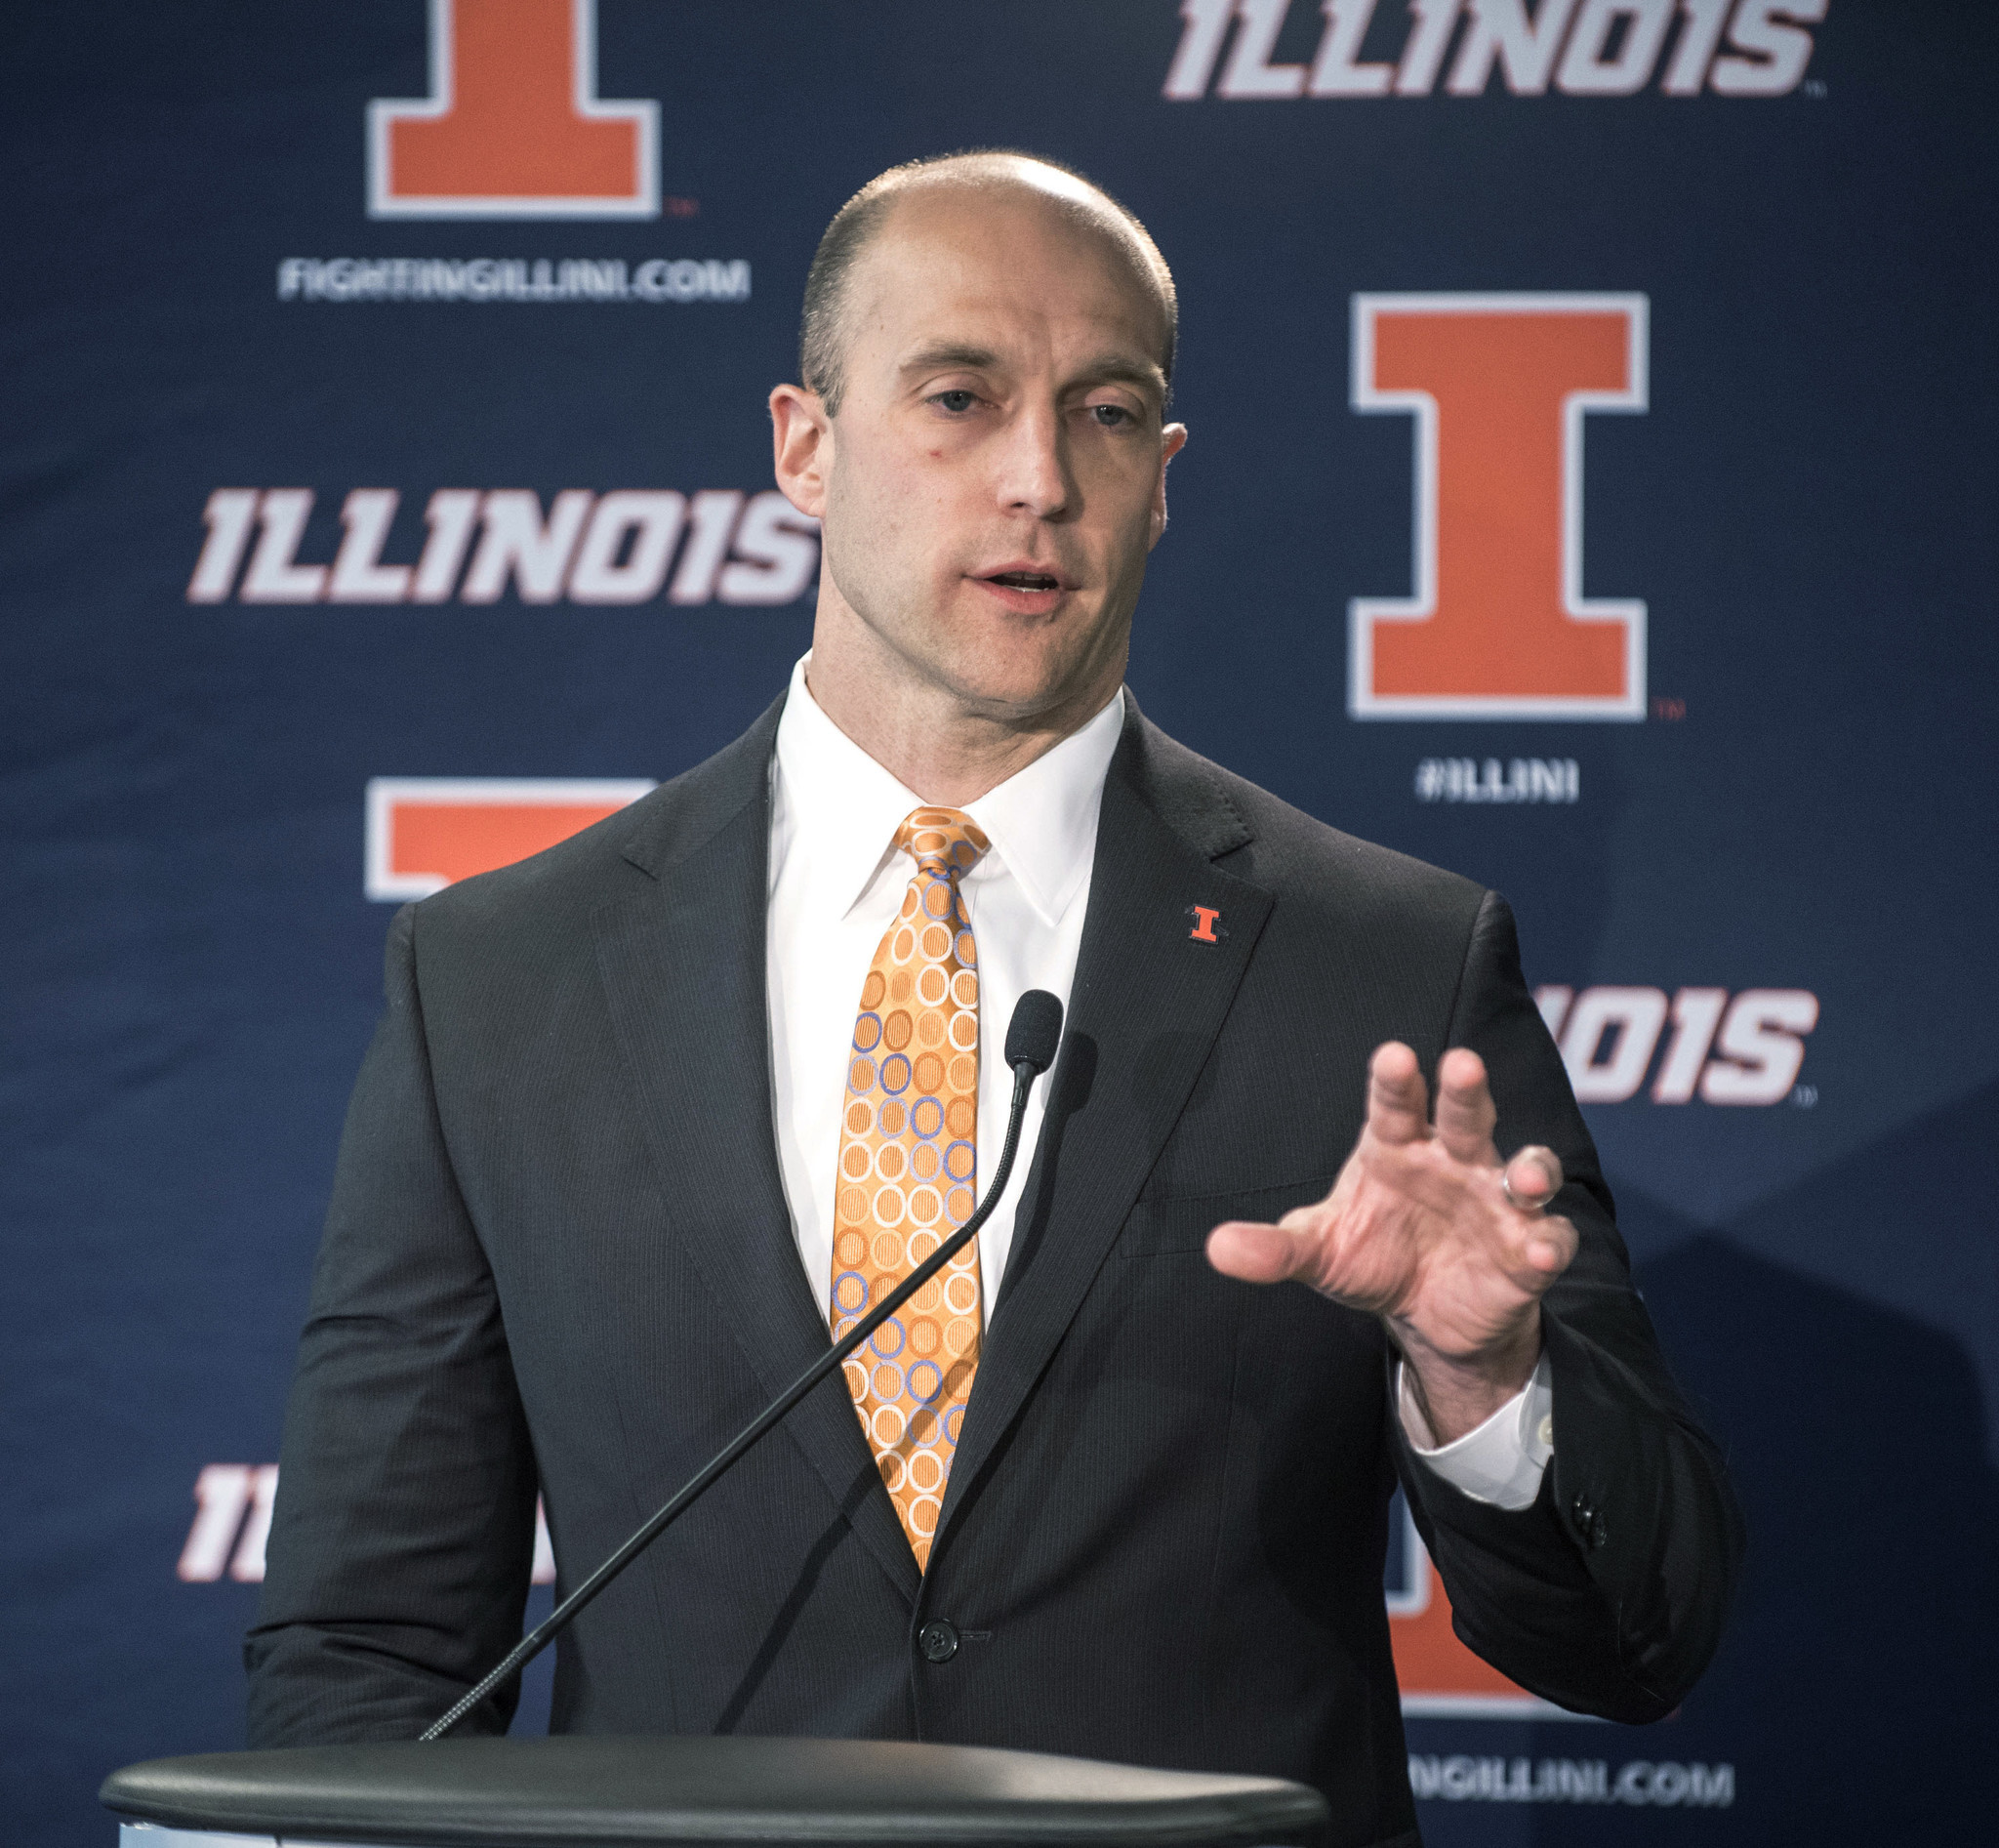 Q&A with Illini AD Josh Whitman on Friday night games, early recruiting new mascot and more